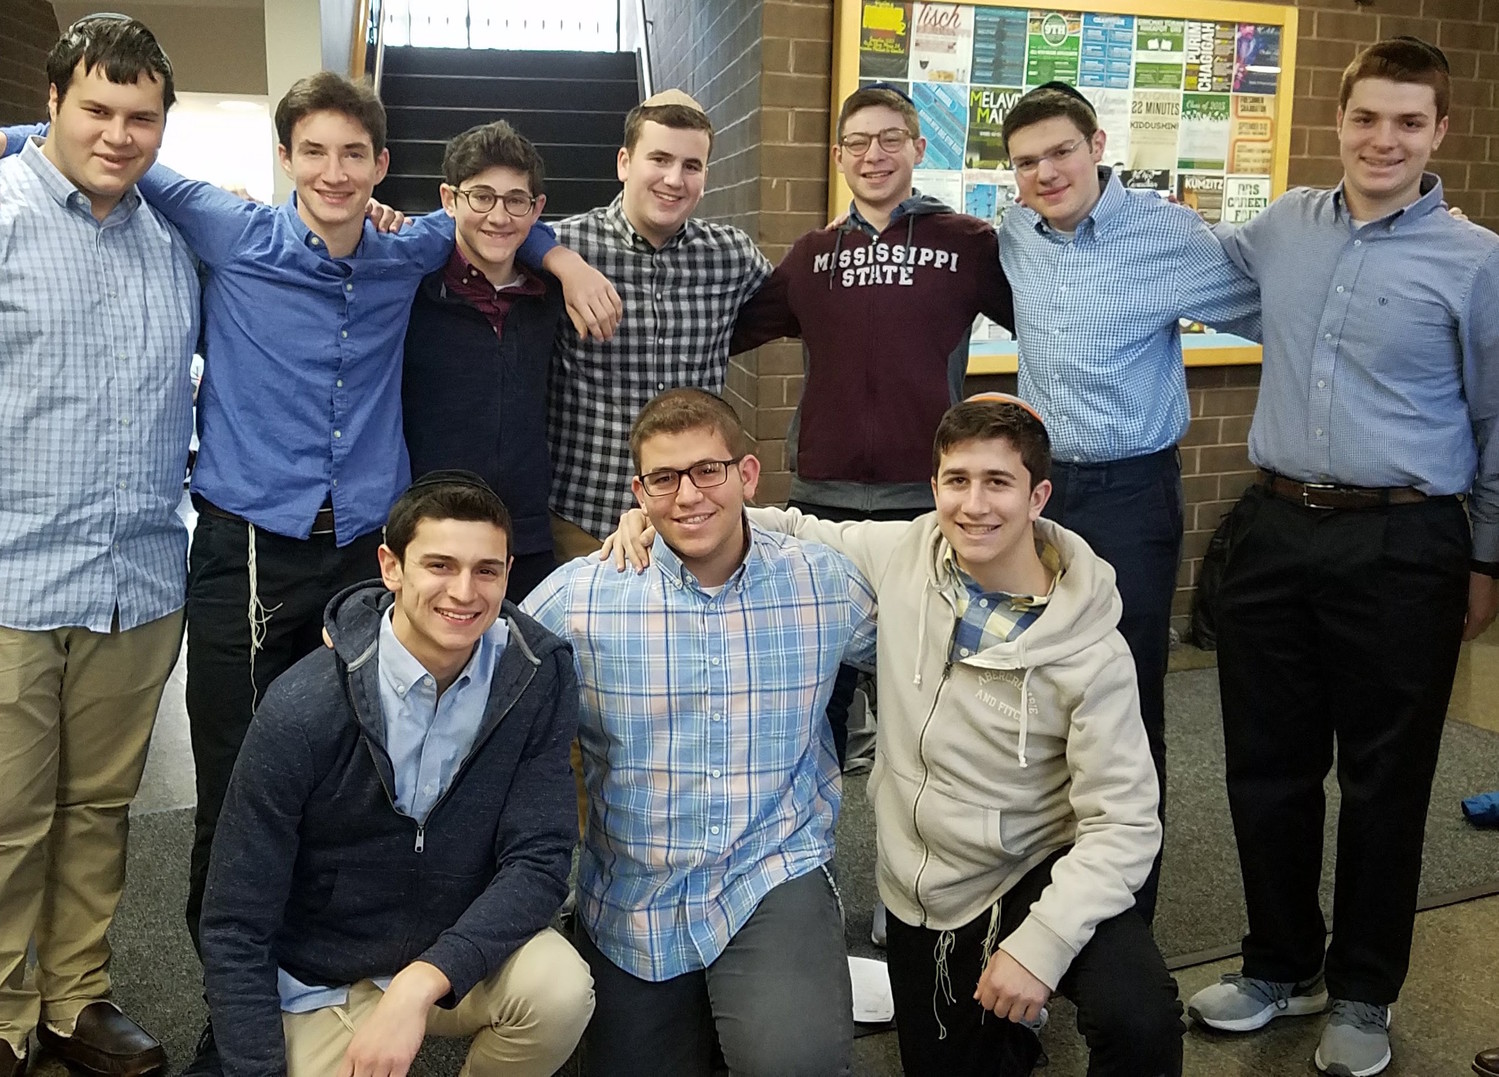 DRS students accepted into the Yeshiva University's Honors Program: Benyamin Bortz, Aaron Singer, Eitan Carrol, Uri Ash, Yosef Mehlman, Daniel Goldstein, Steven Liever, Avishai Teitelbaum, Jonah Loskove and Chezky Rothman.